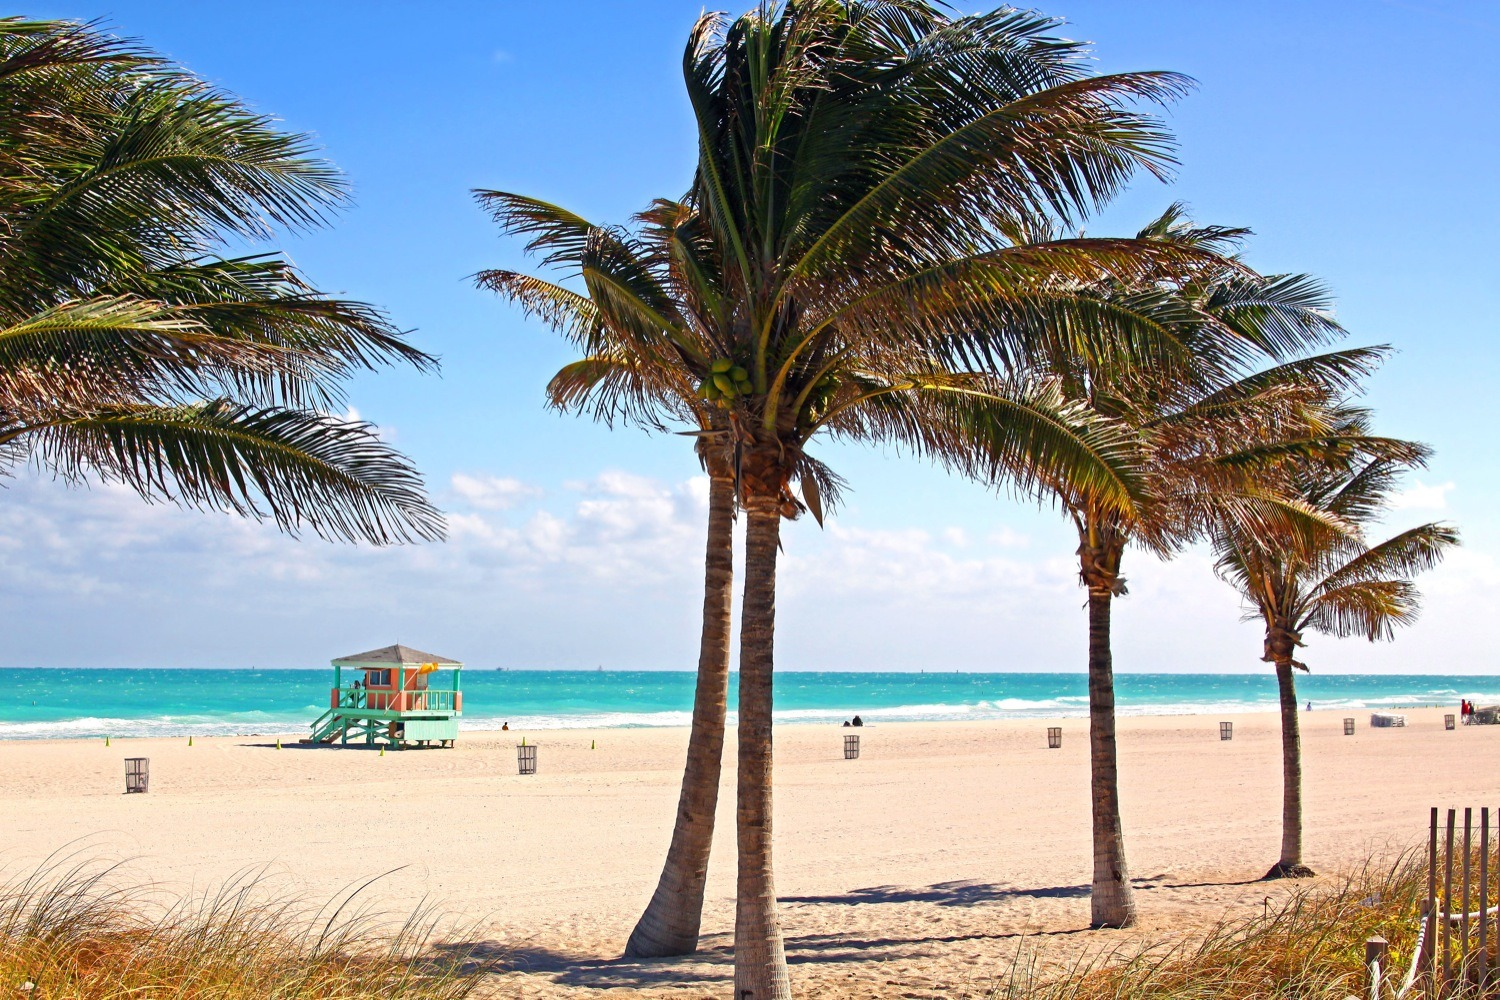 How Long From South Beach To Bal Harbour By Bus